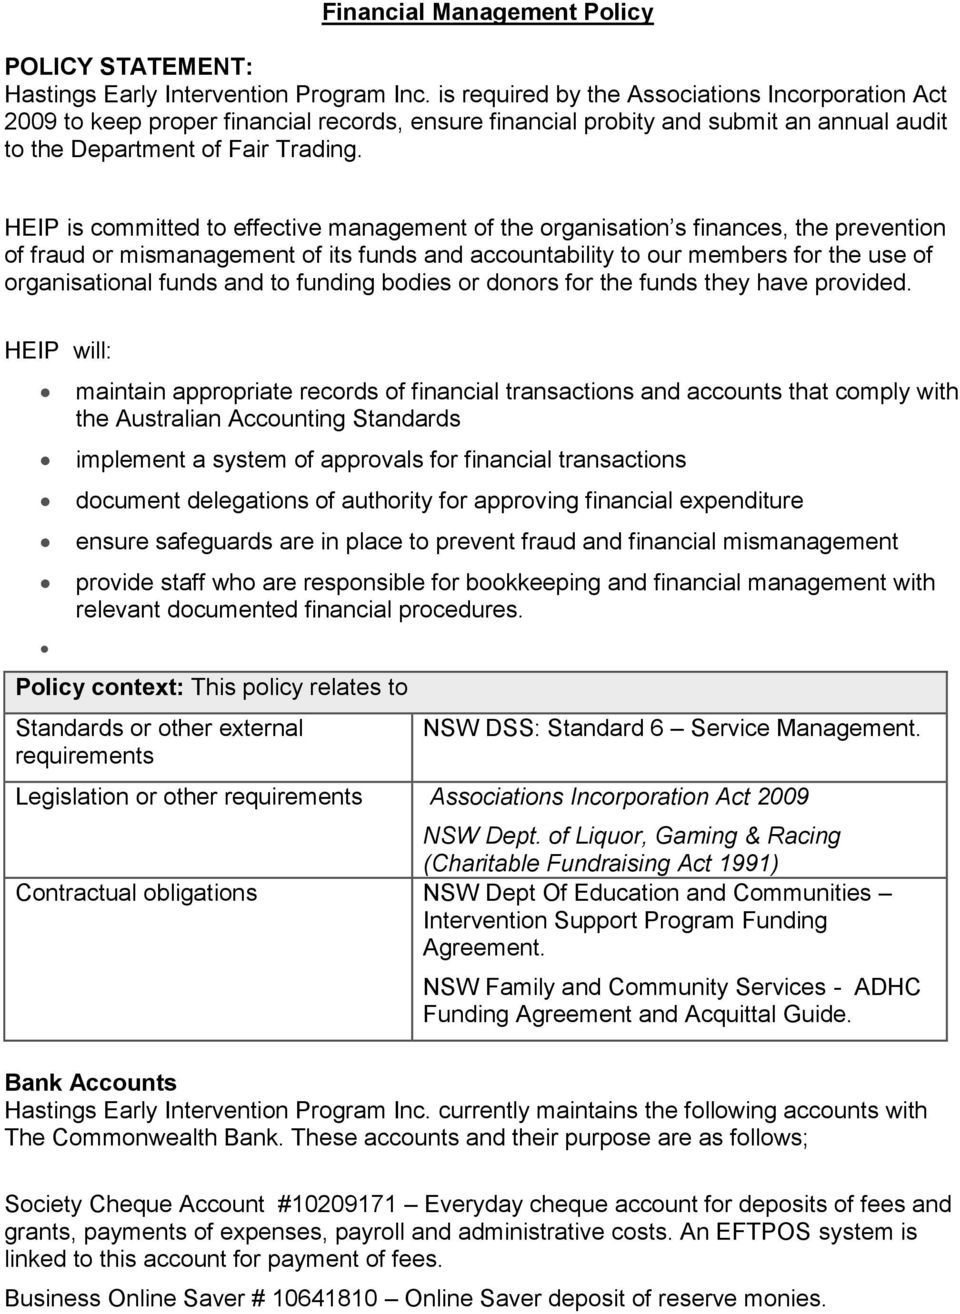 HEIP is committed to effective management of the organisation s finances, the prevention of fraud or mismanagement of its funds and accountability to our members for the use of organisational funds